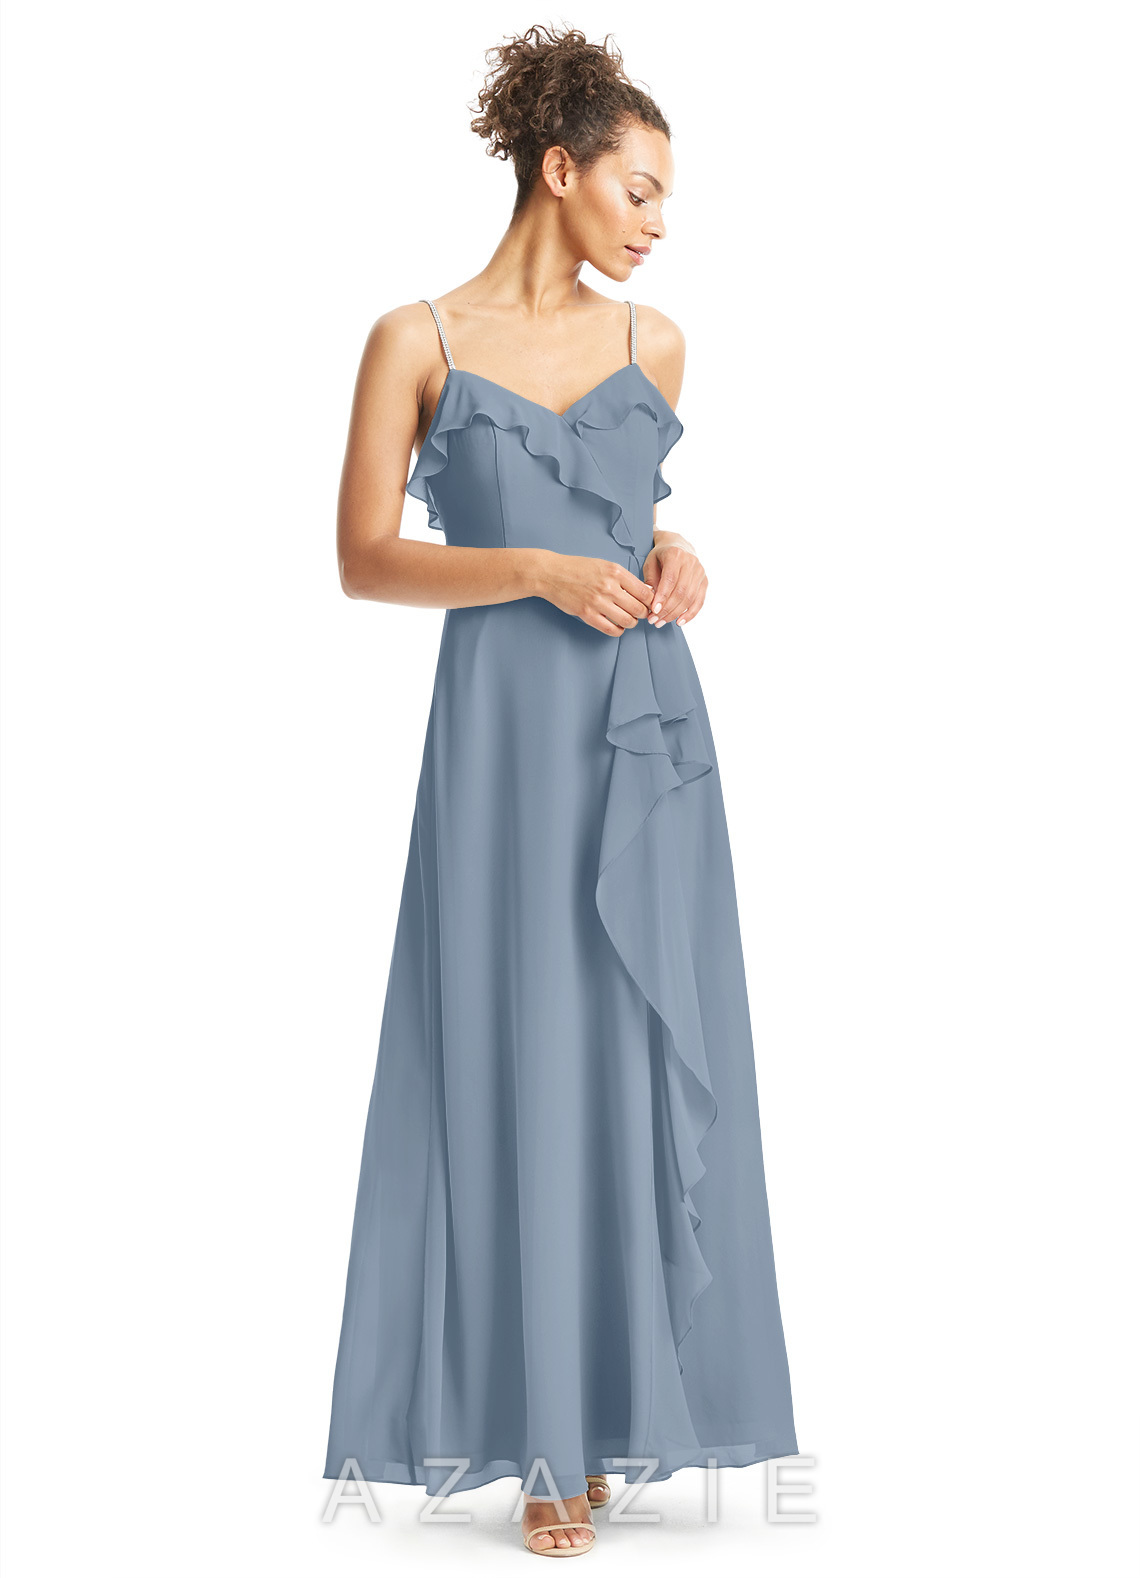 Azazie Kendra Bridesmaid Dress | Azazie